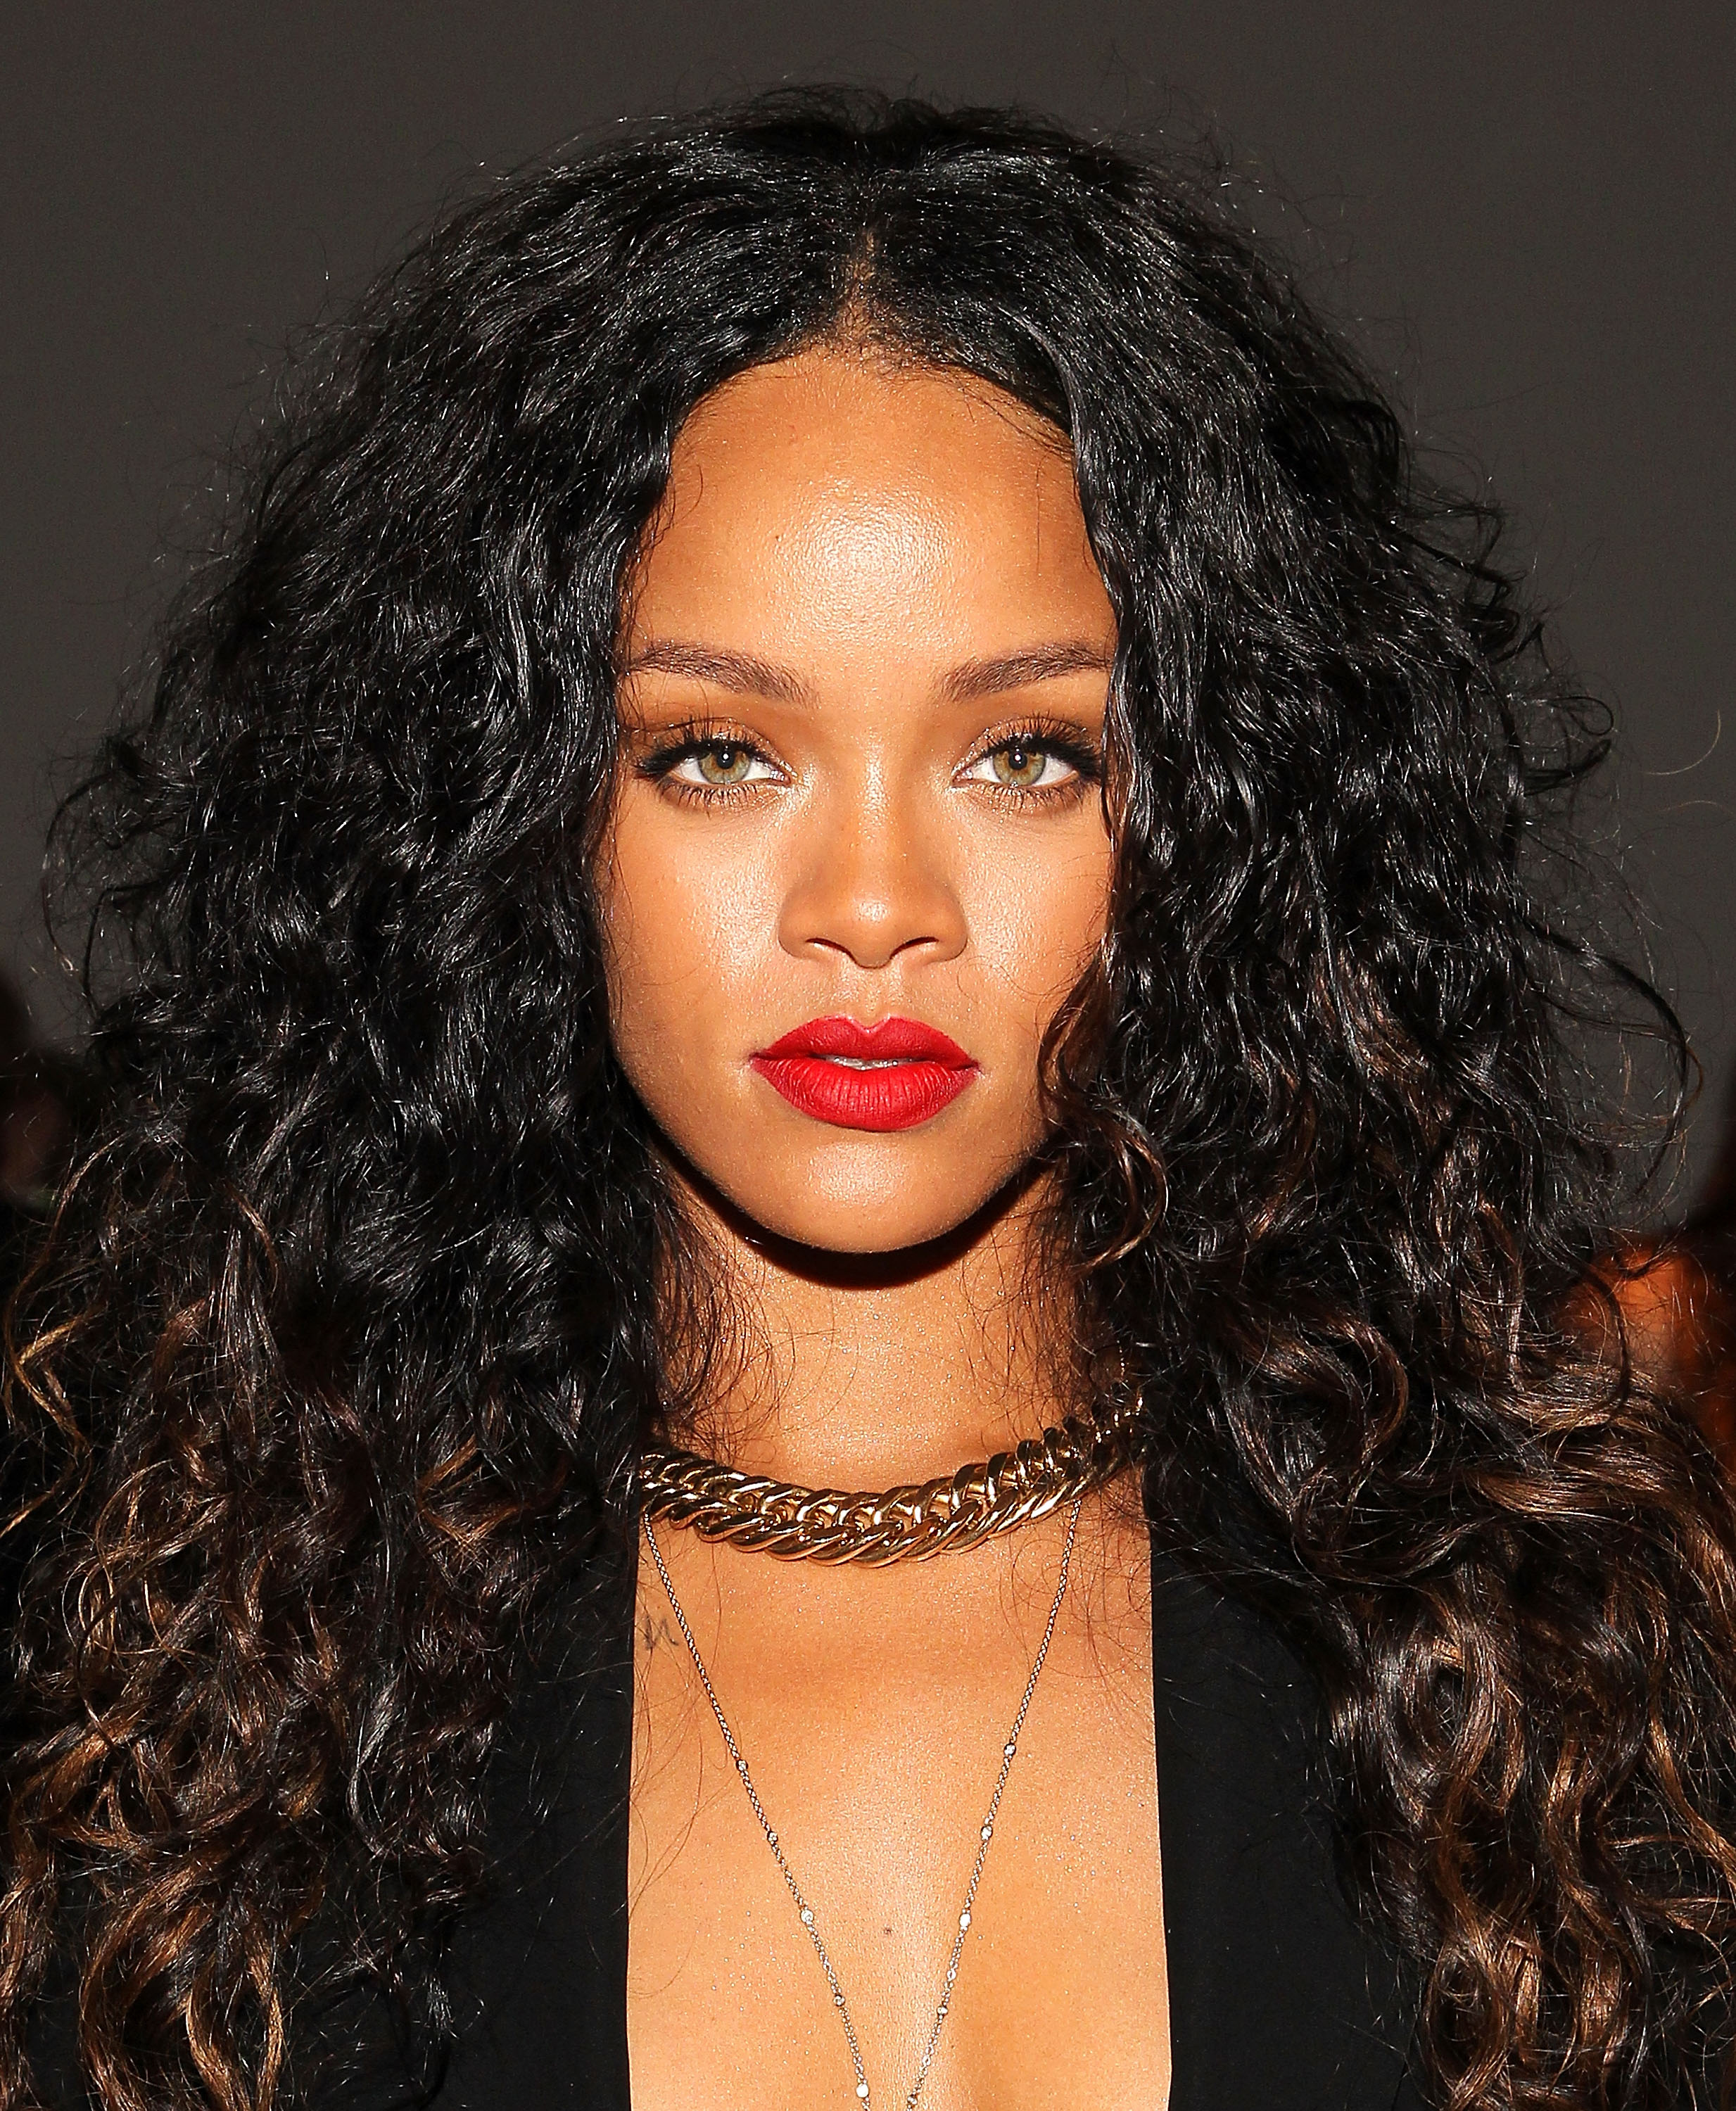 Rihanna Before After : rihanna, before, after, Rihanna, Slams, Pulling, After, Incident